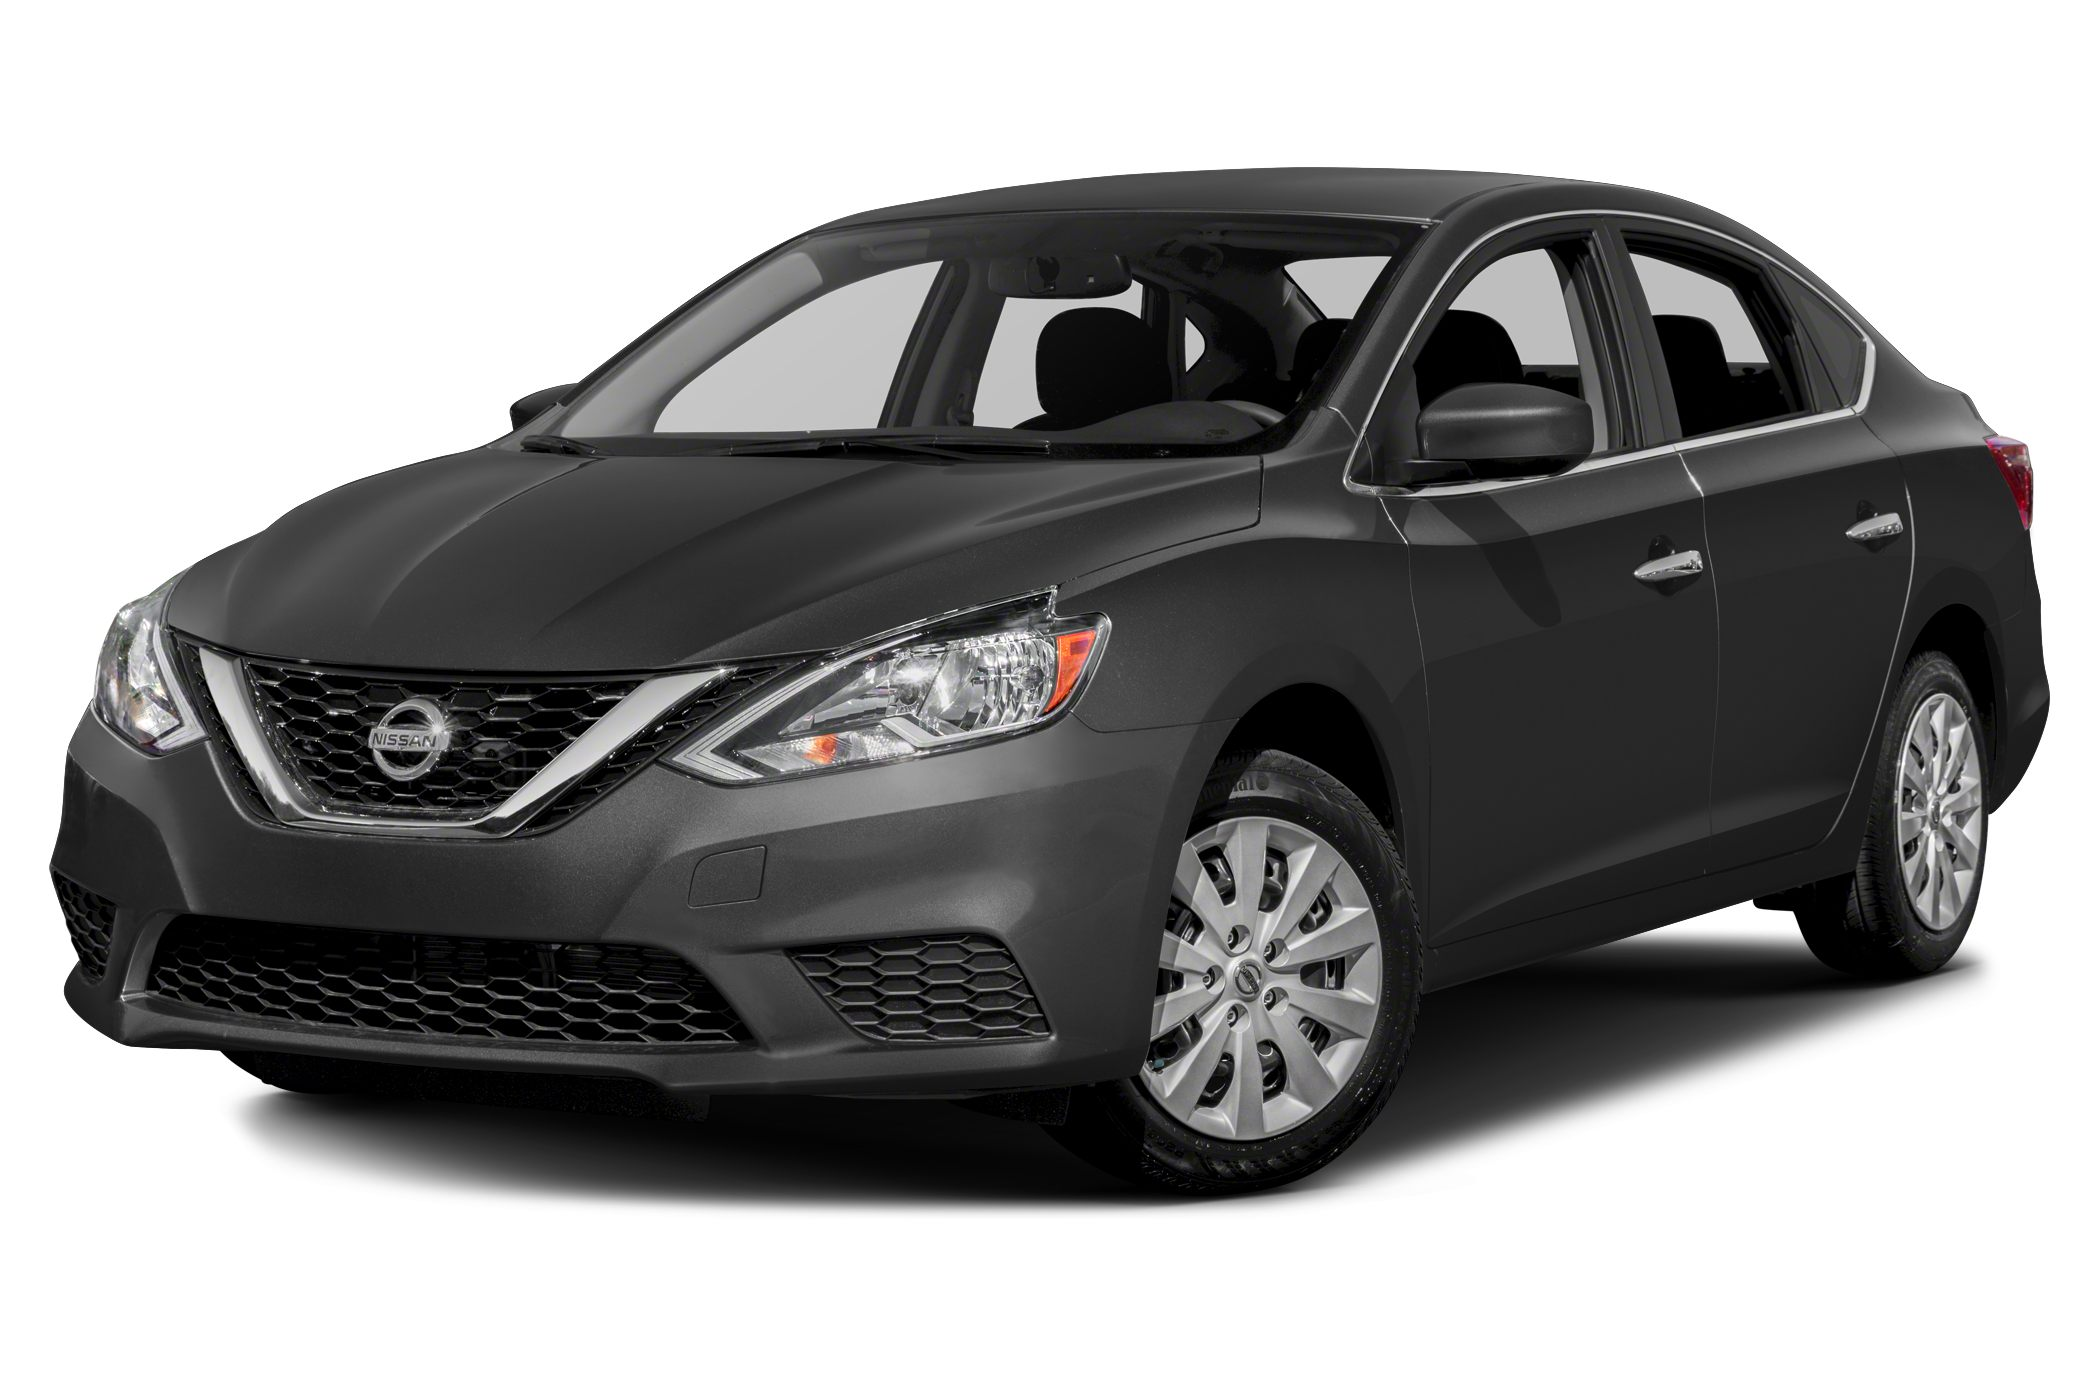 2017 Nissan Sentra S New Arrival -Great Gas Mileage- Bluetooth This 2017 Nissan Sentra S is Gun